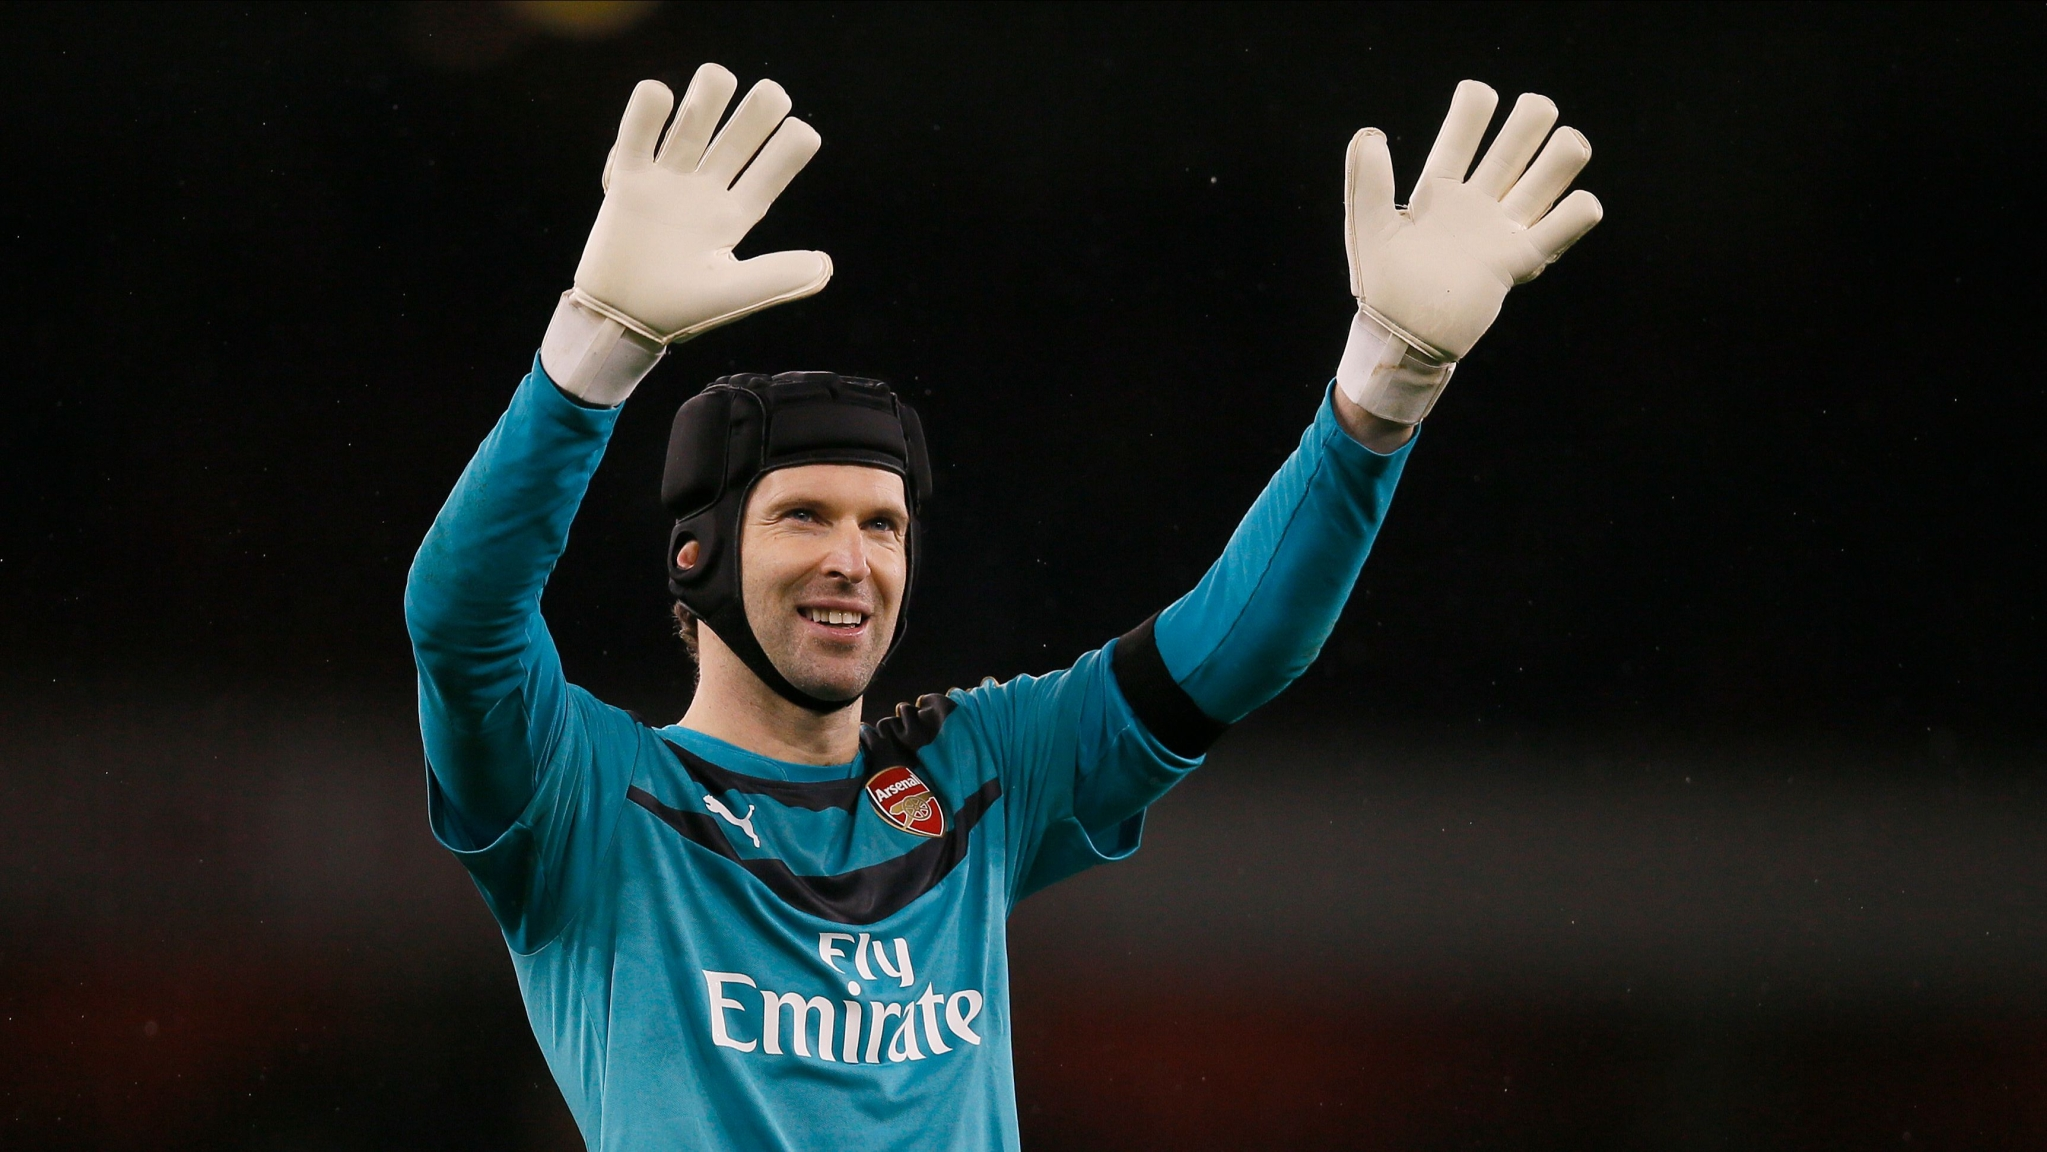 Arsenal Goalkeeper Petr Cech to Retire at End of Season